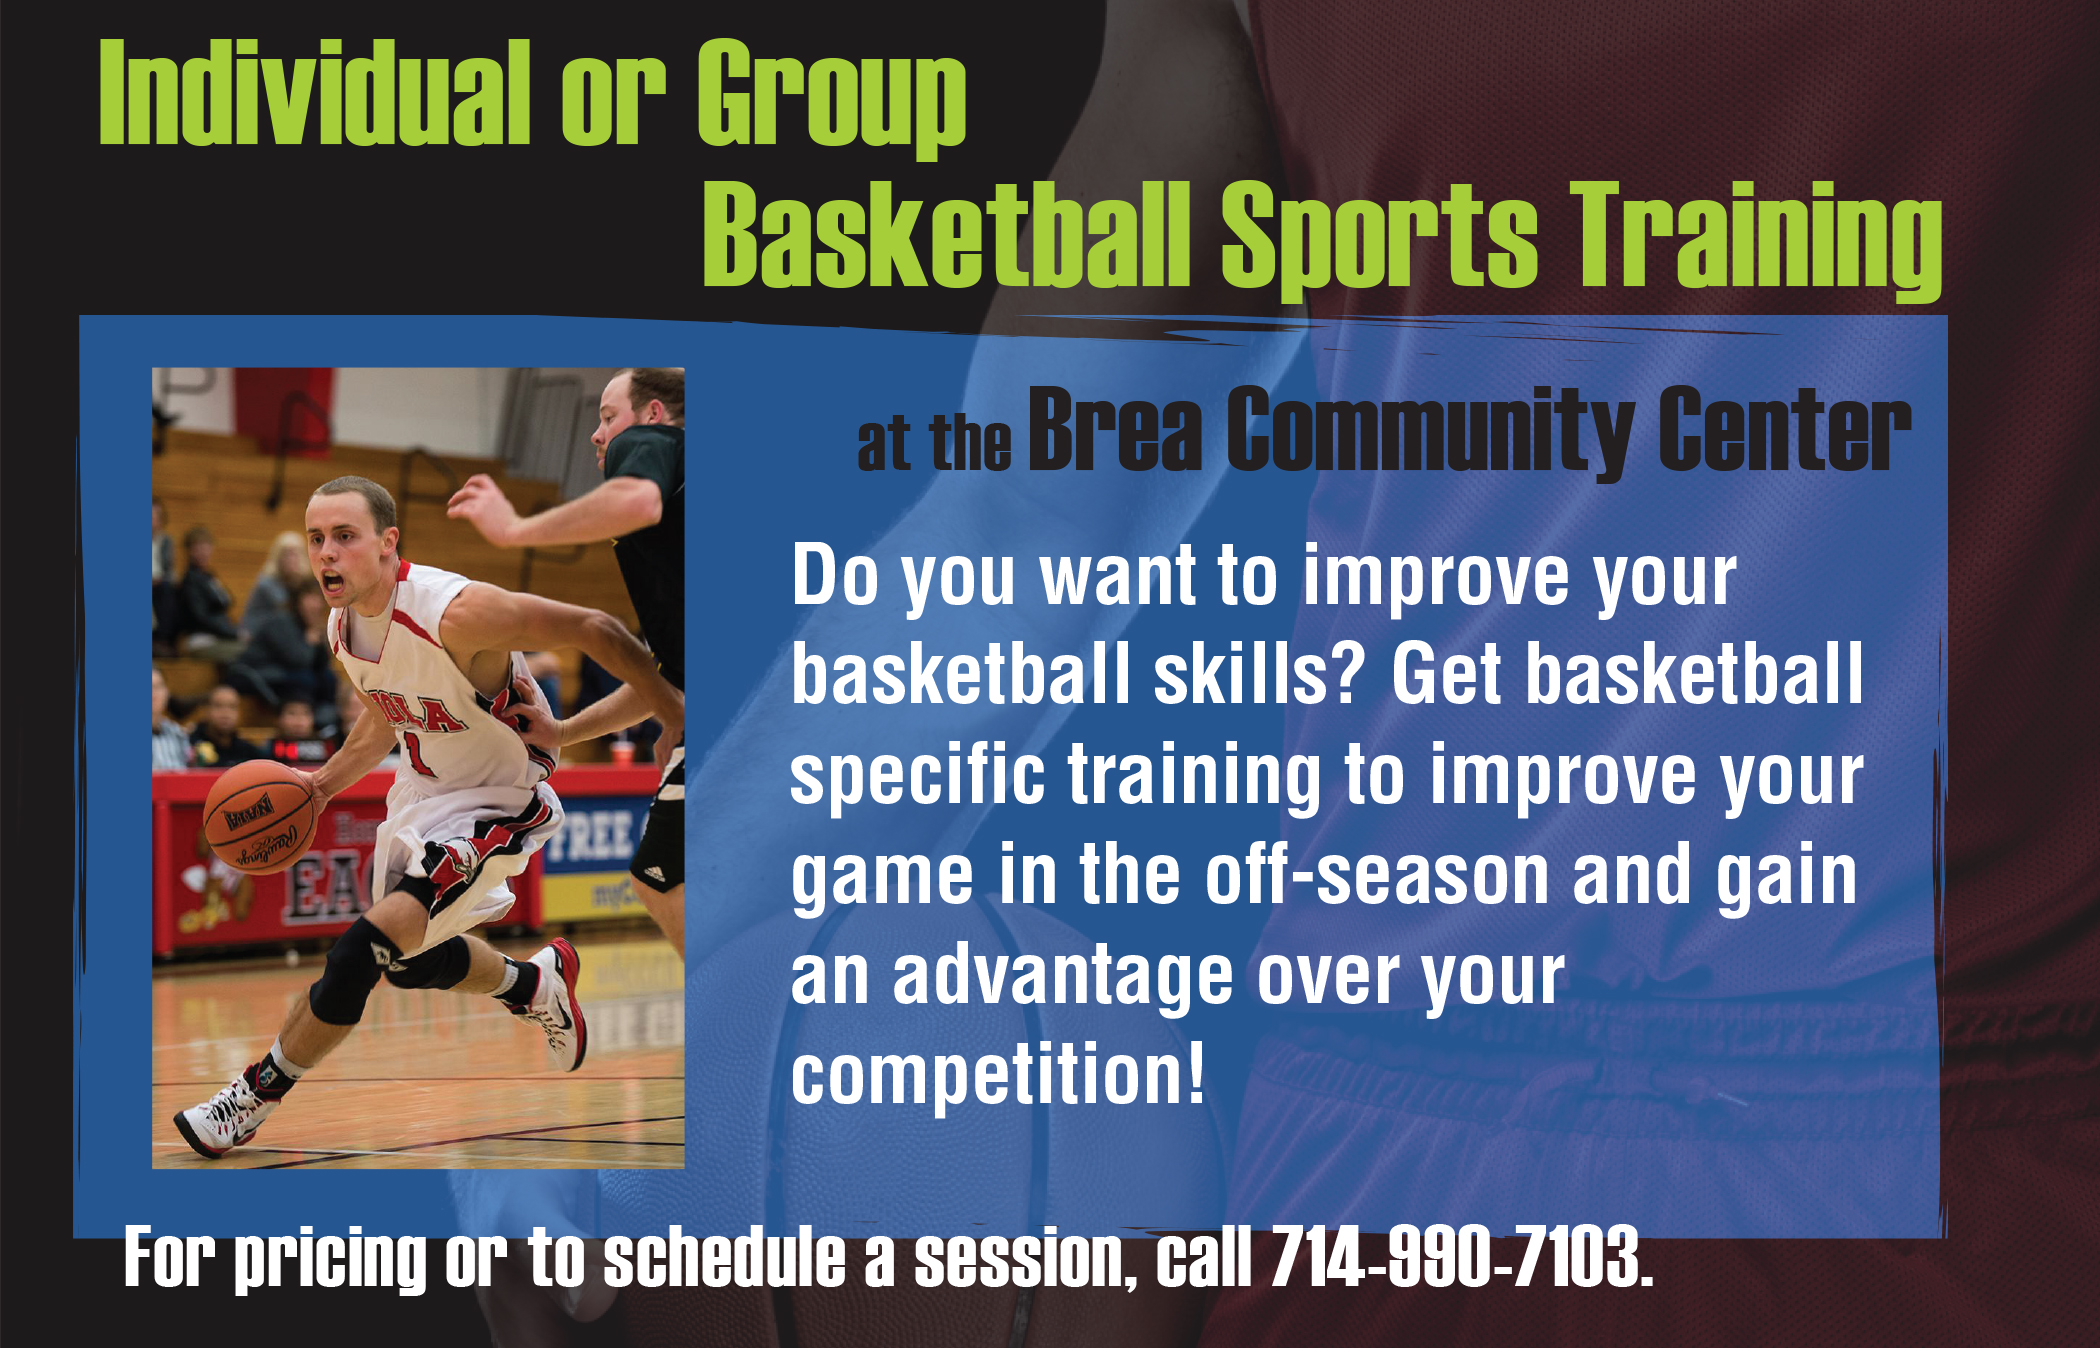 Basketball Sports Training